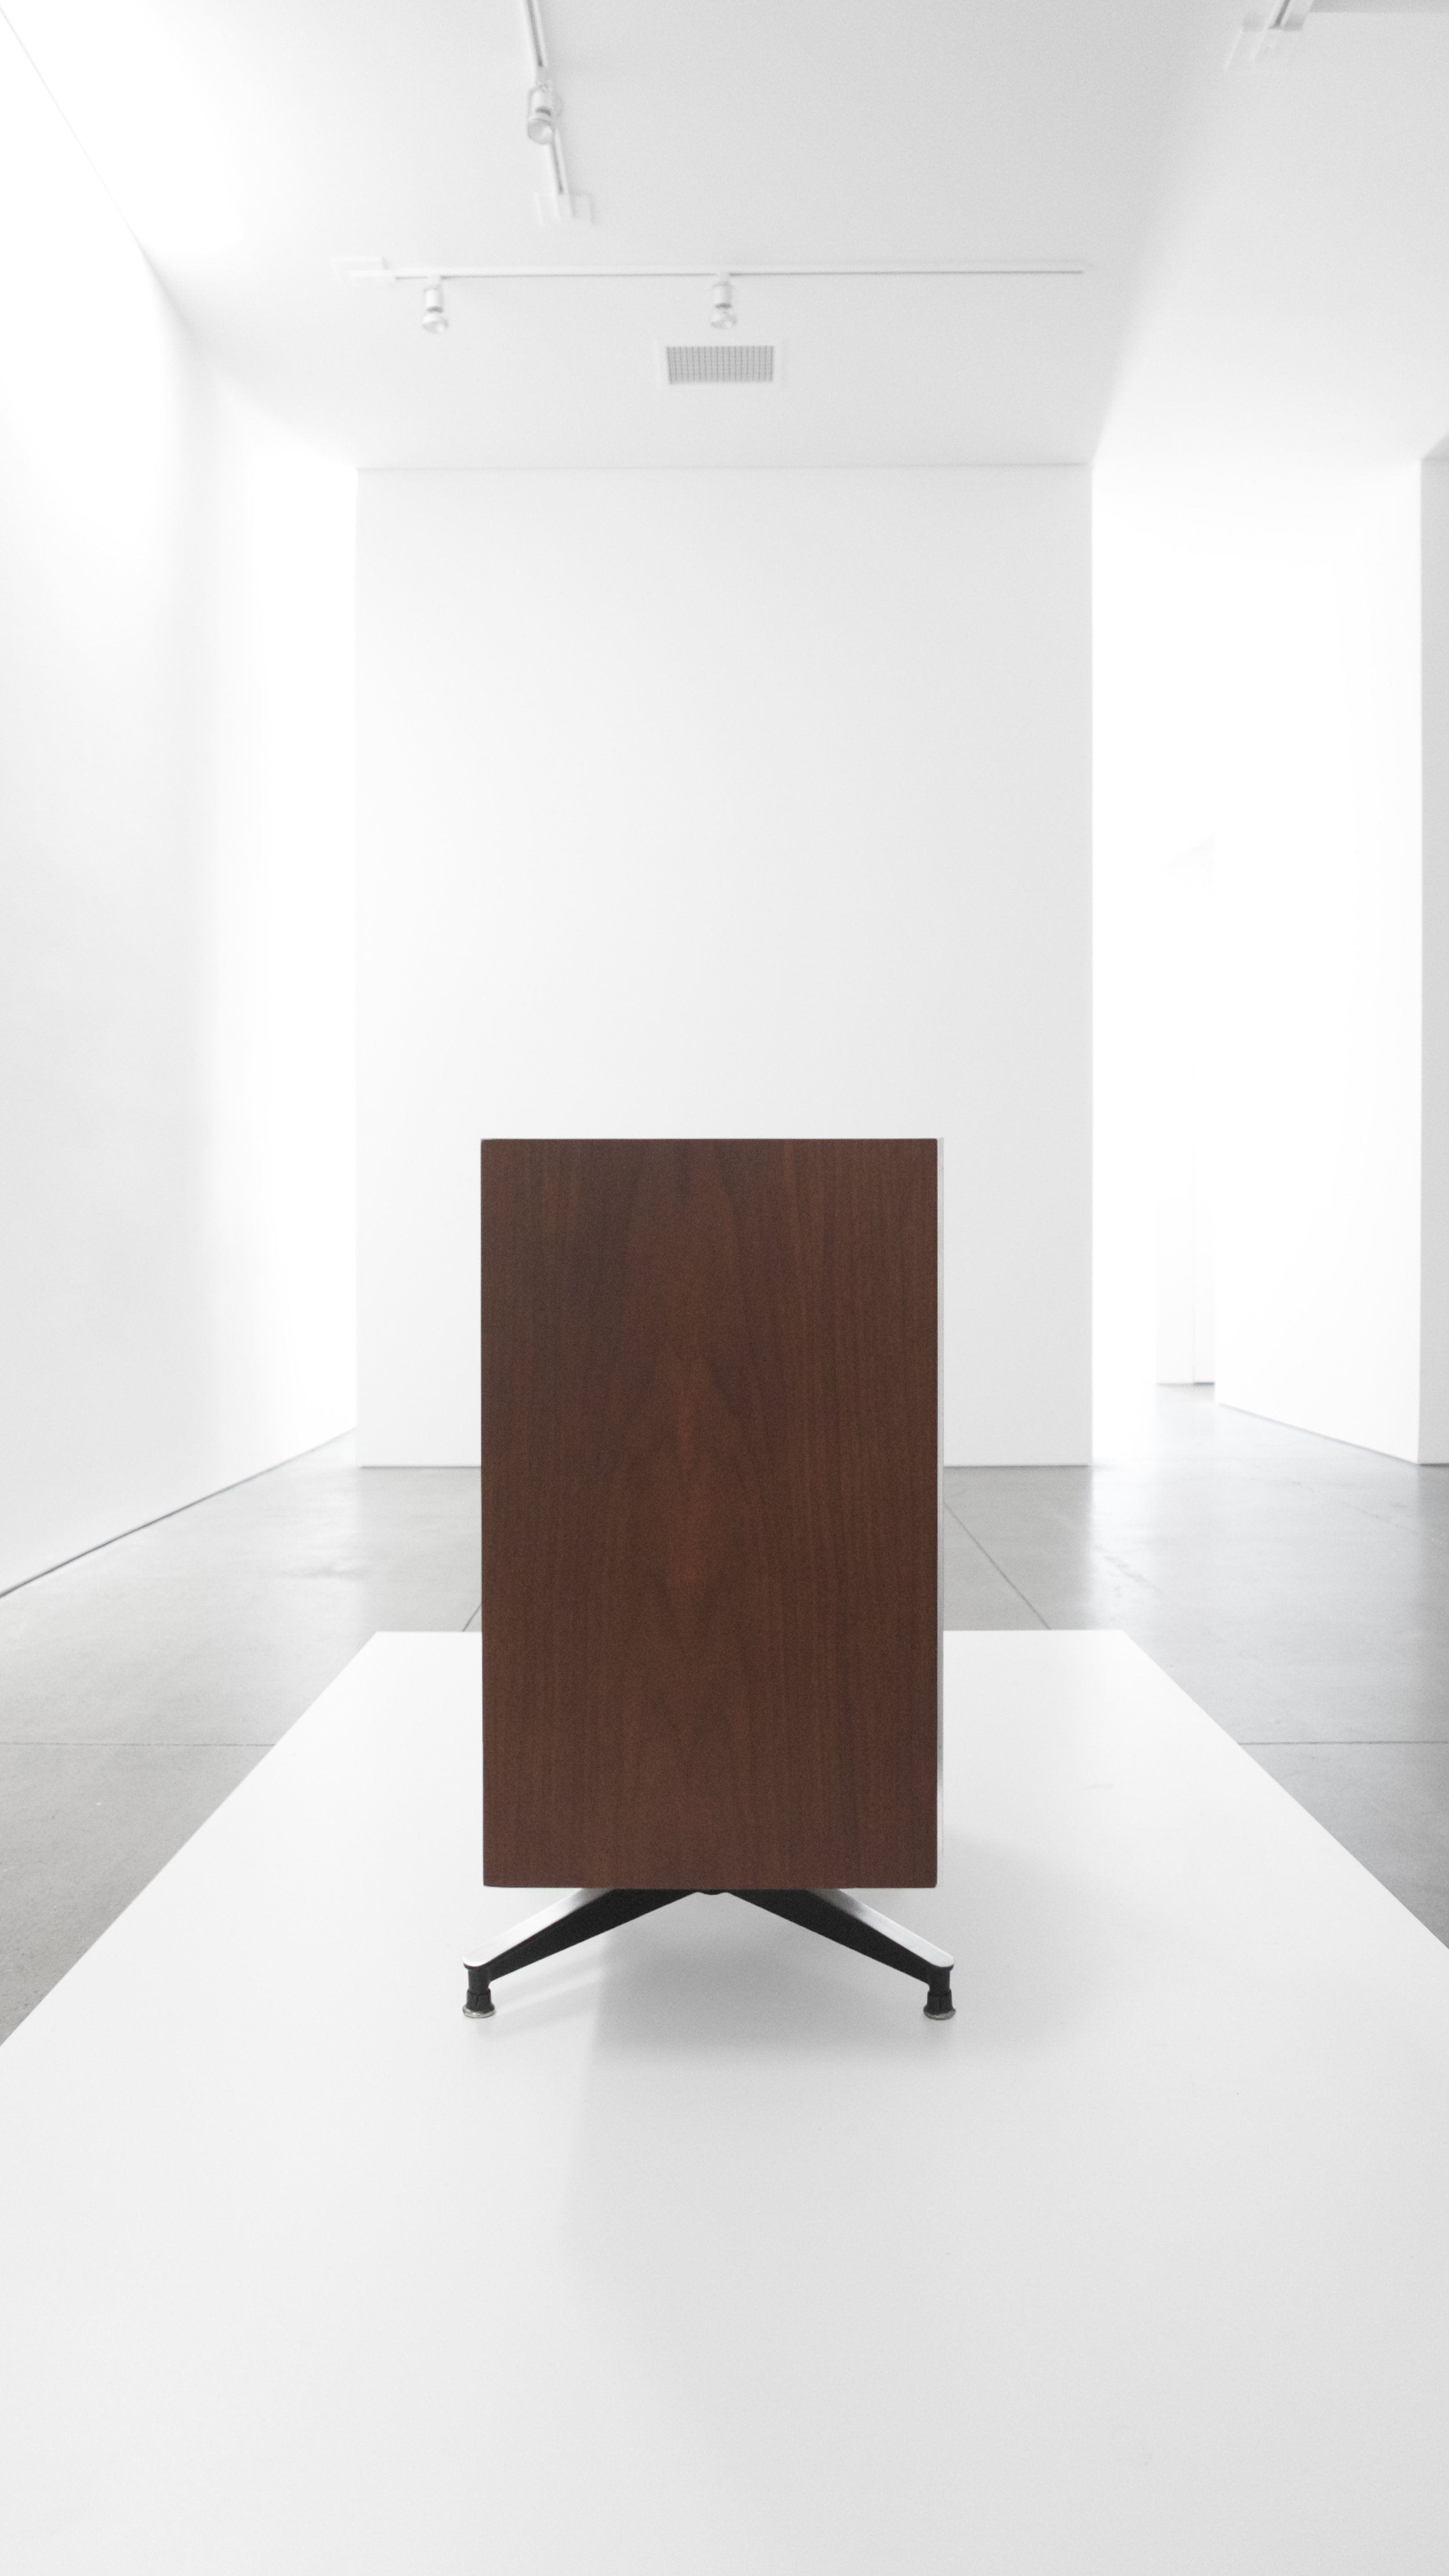 4. Charles and Ray Eames, EAMES Speaker, 1956, lacquered wood, laminate, polished and enameled aluminum, 28.5H x 30W x 13.5D inches.jpg